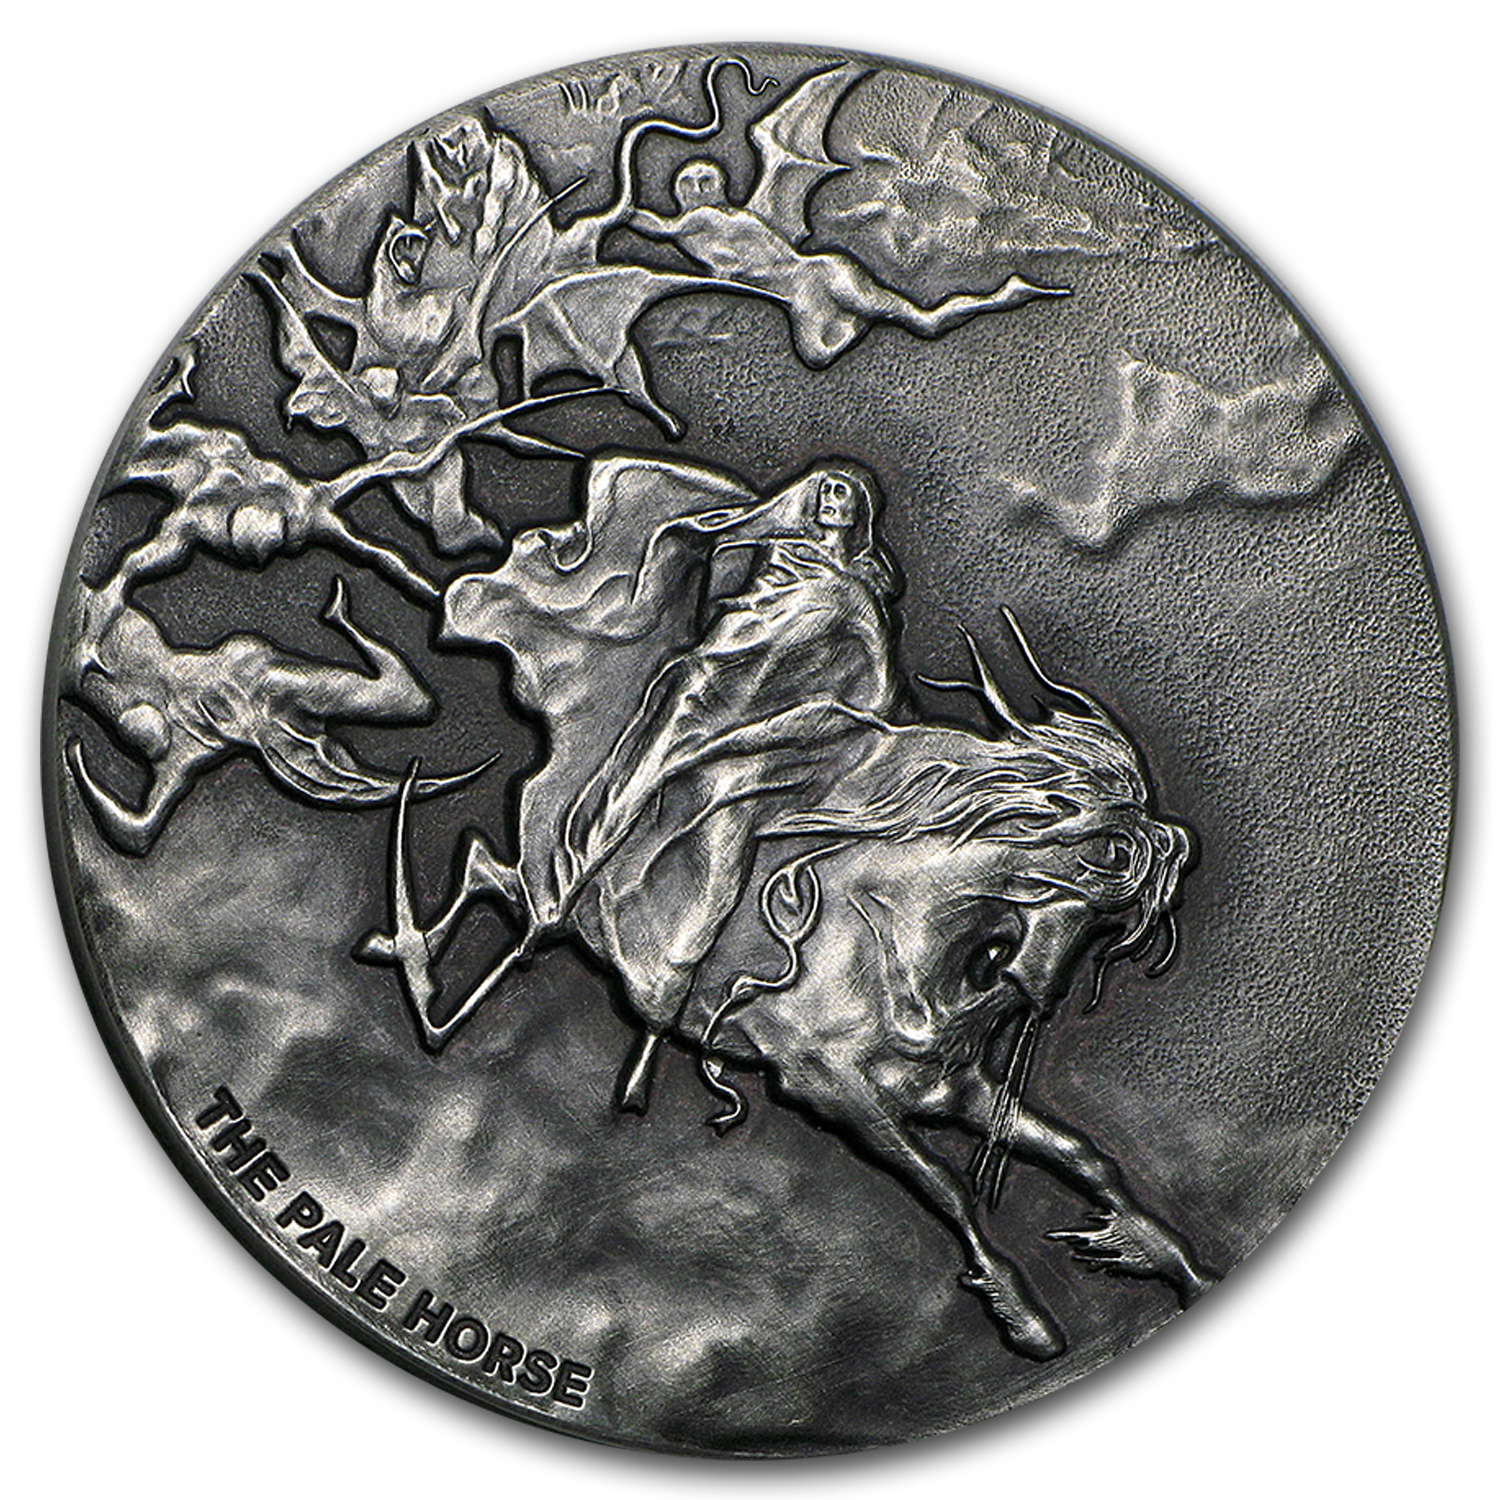 2 Oz Silver Coin Biblical Series Pale Horse Biblical